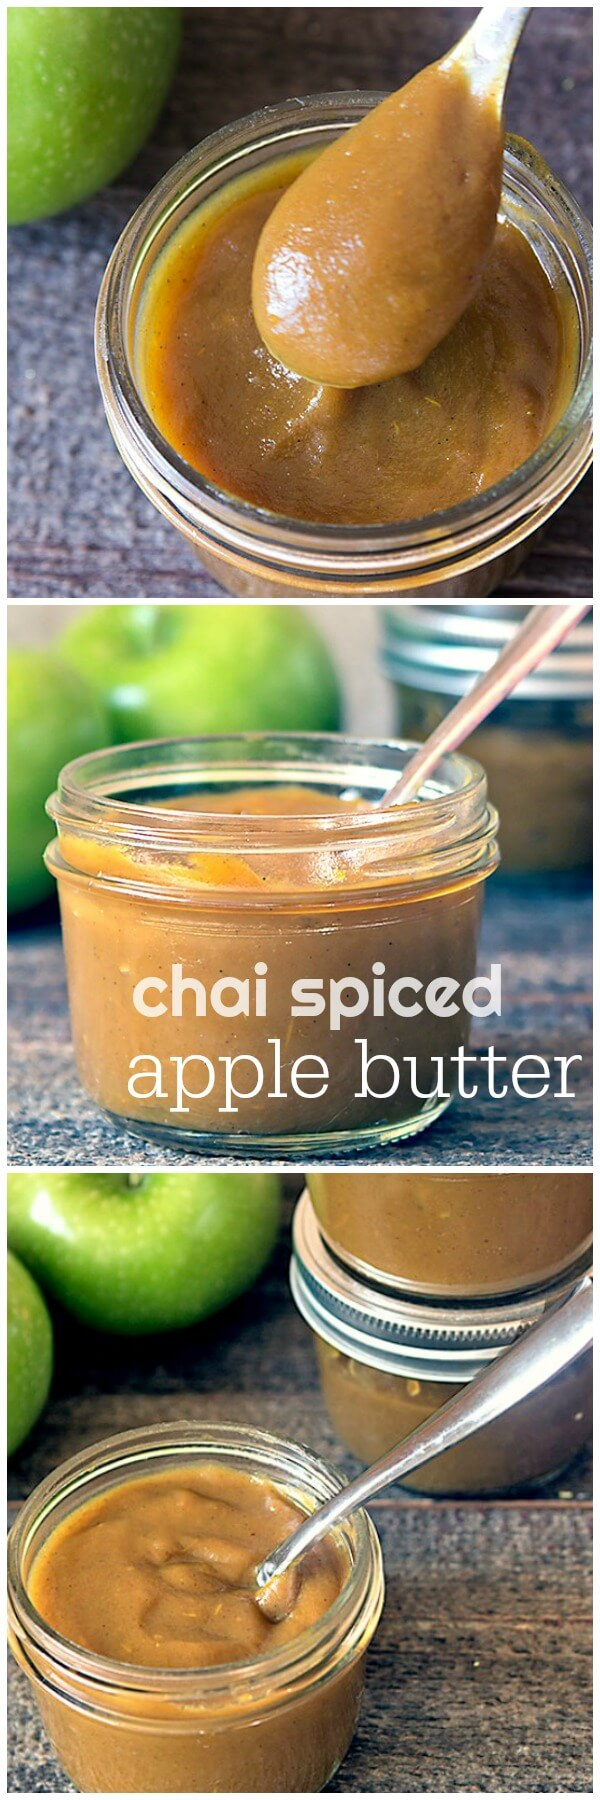 Chai spiced apple butter is SO quick and easy to make in an Instant Pot multicooker or a slow cooker! This delicious homemade apple butter recipe can be served as a spread on toast or crackers, as a healthy dip for fruit or vegetables, a topping for meats, or even as a dessert sauce! #instantpot #recipe #slowcooker